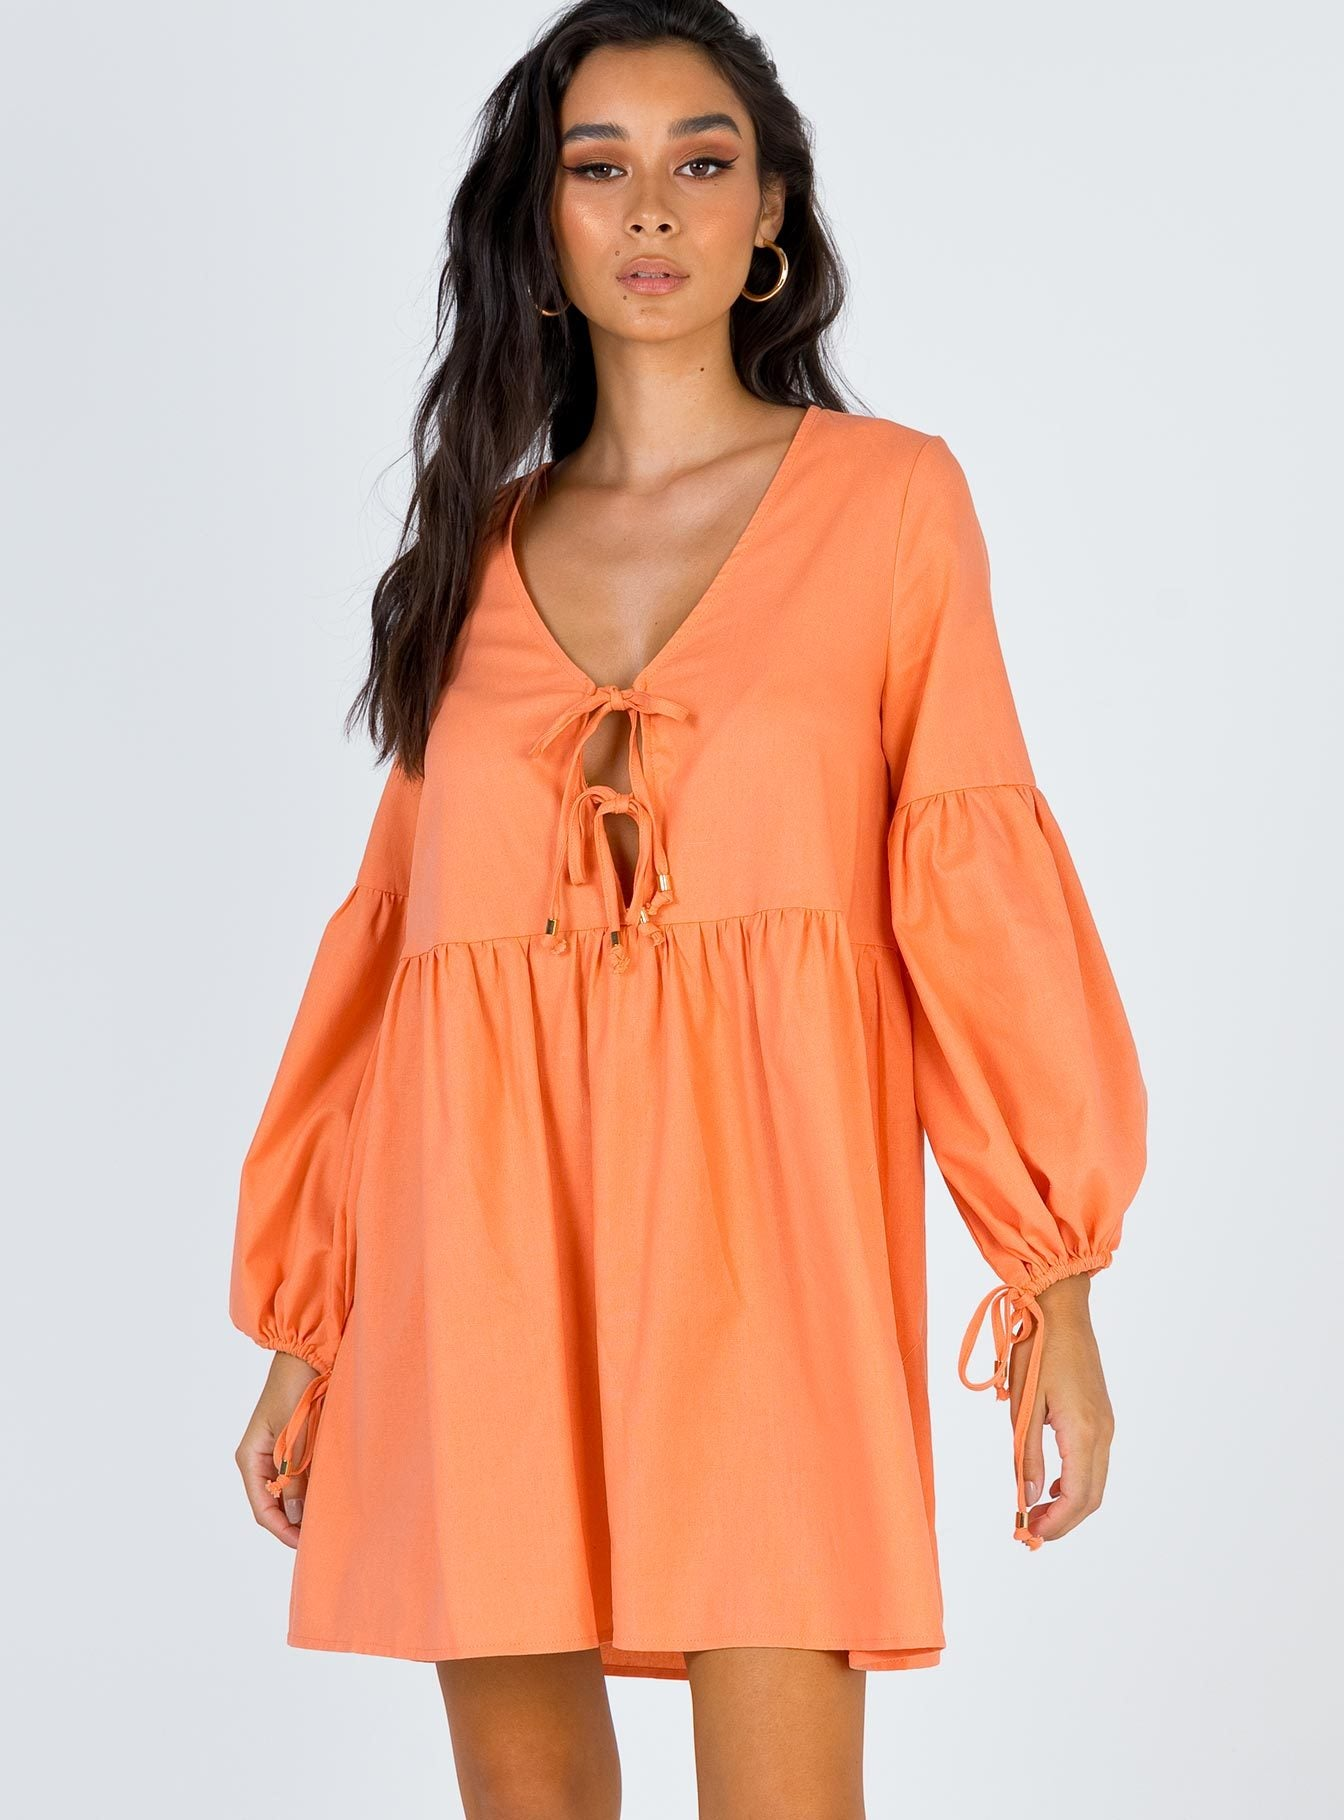 Marigold Mini Dress Orange